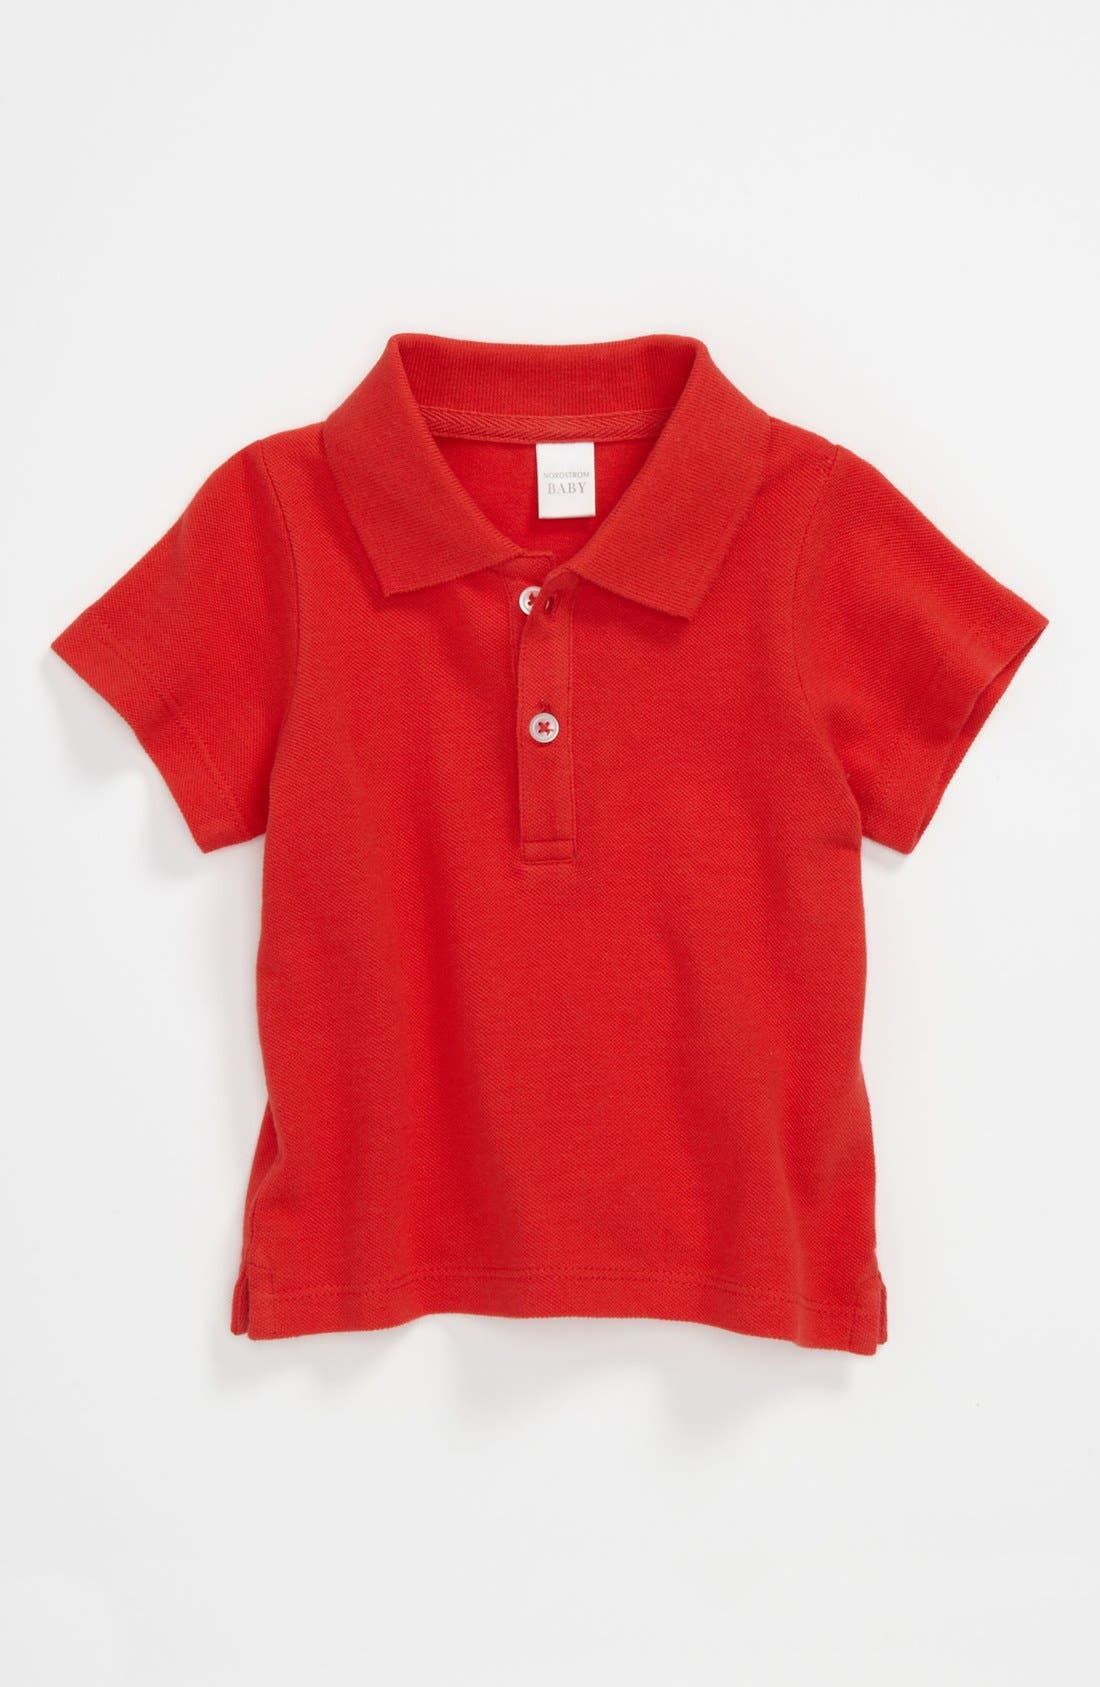 Main Image - Nordstrom Baby Polo Shirt (Baby)